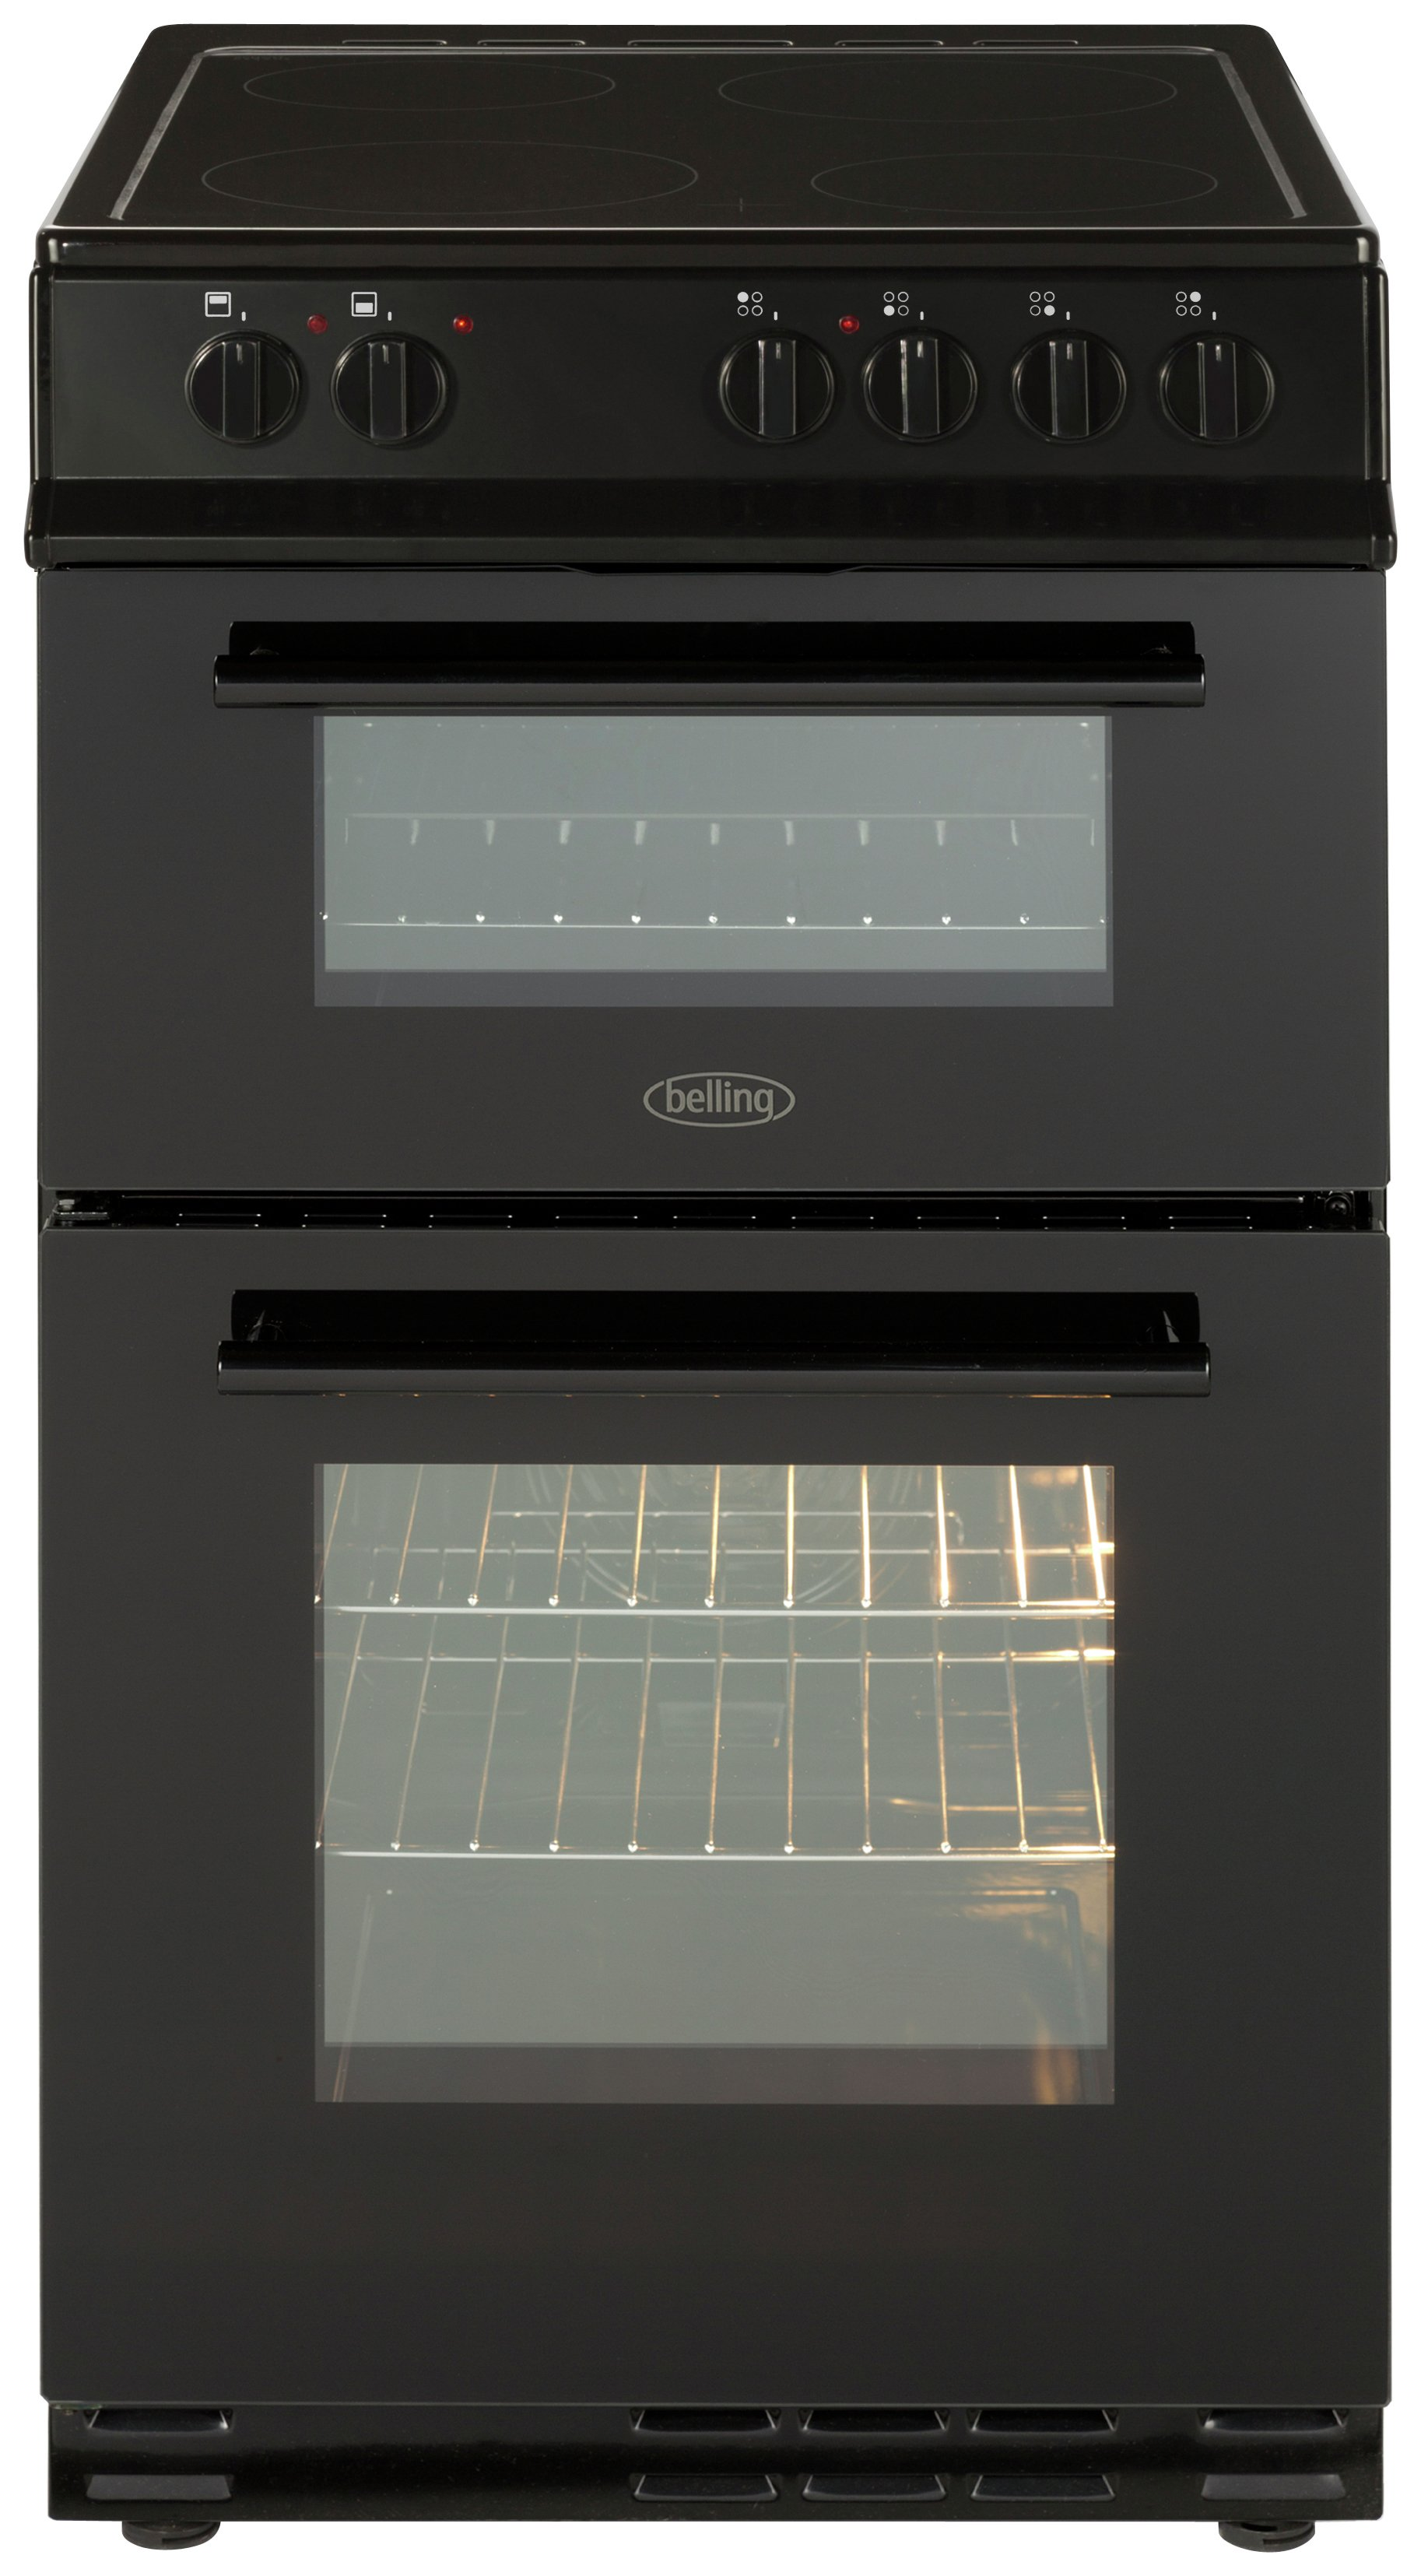 Belling FS50EDOFC 50cm Double Oven Electric Cooker - Black Best Price, Cheapest Prices